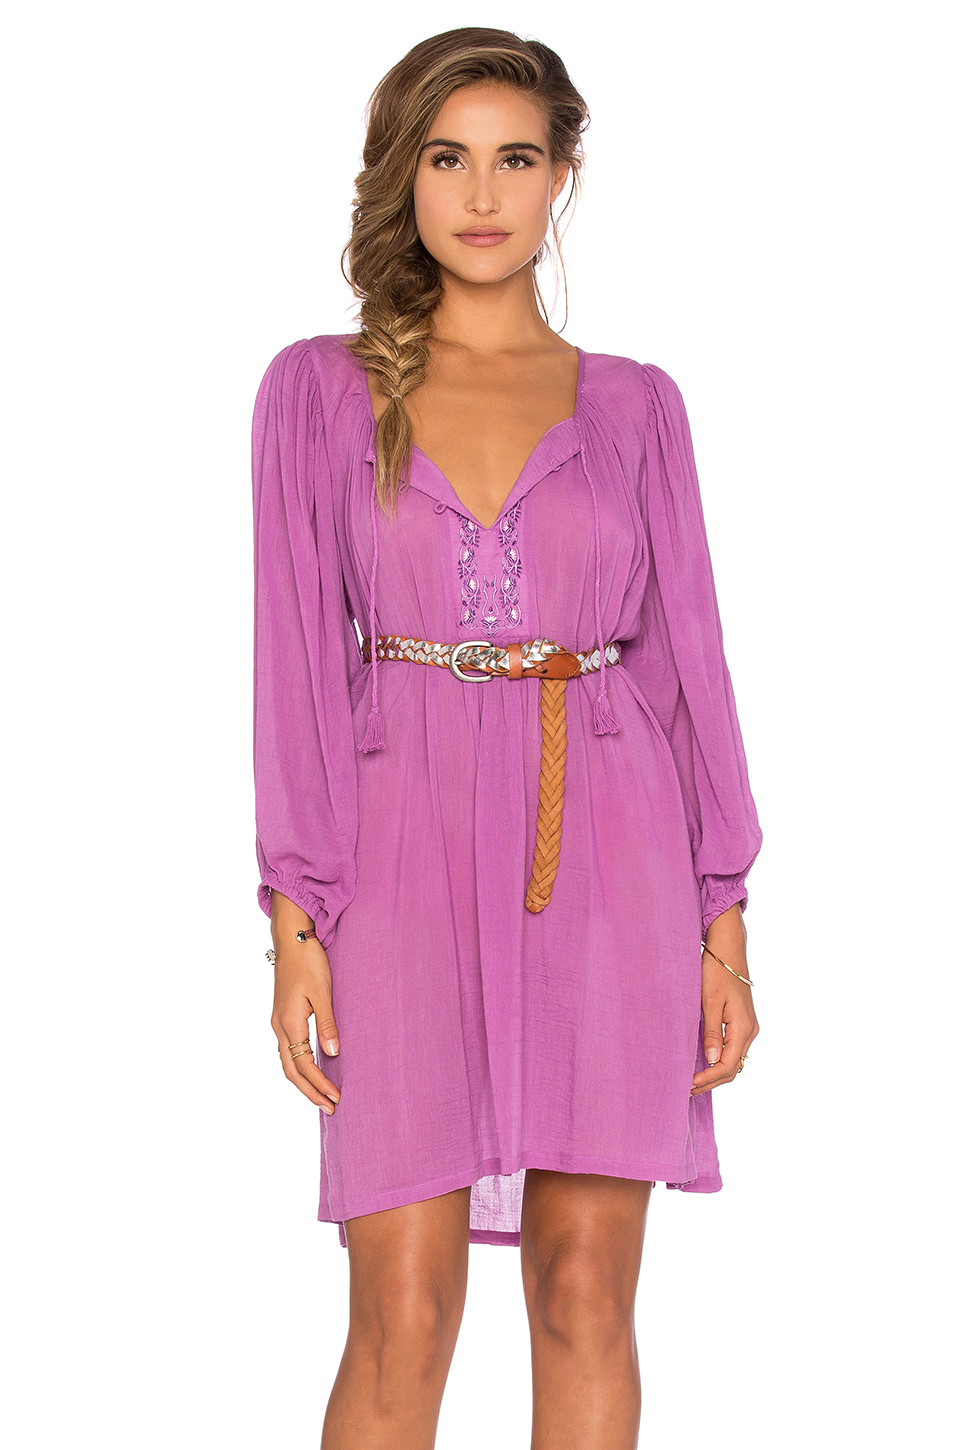 Lyst - Spell & the gypsy collective Wild Orchid Smock ...